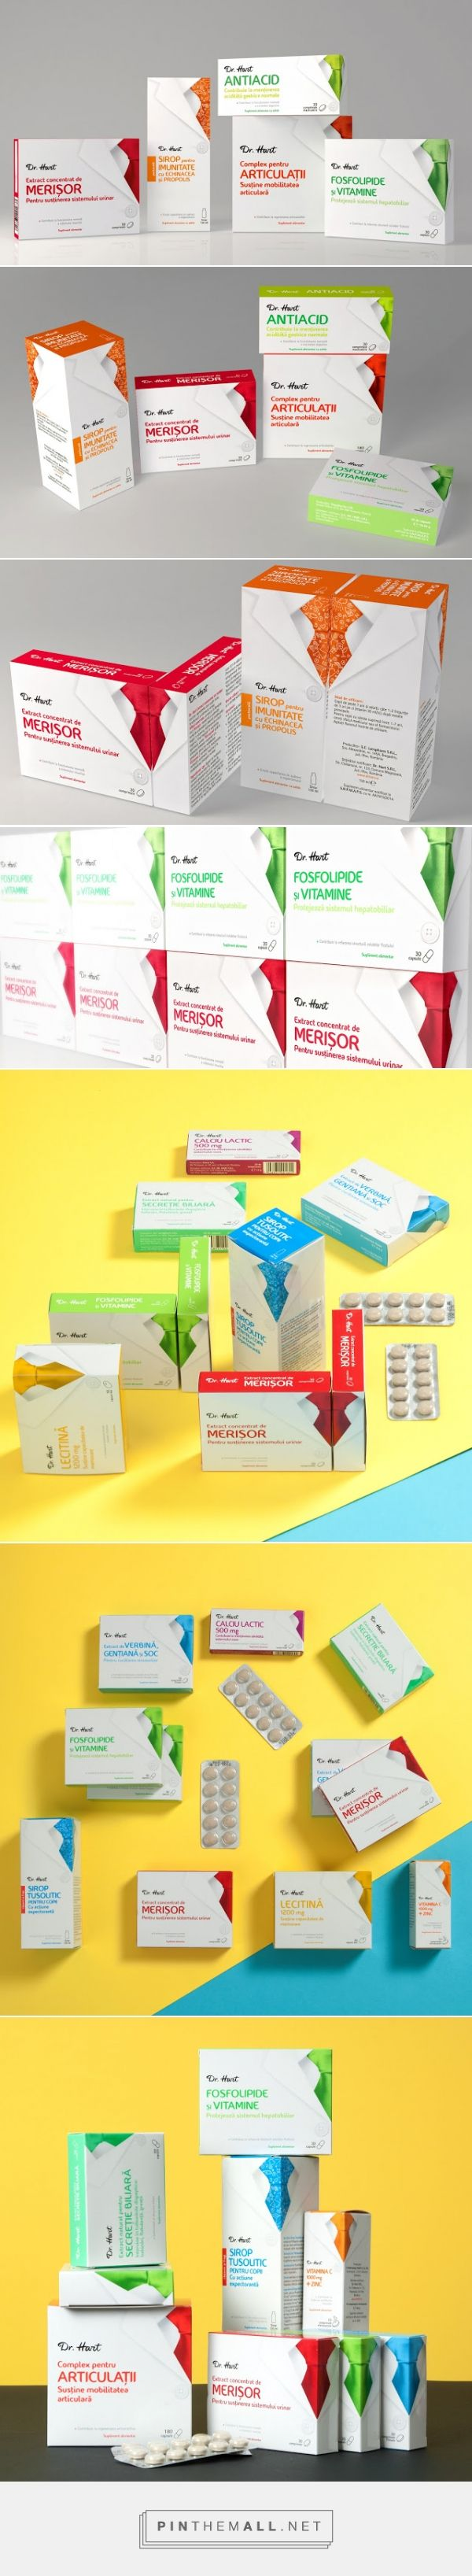 Dr Hart ‪#‎packaging‬ designed by Ampro Design Consultants - http://www.packagingoftheworld.com/2015/03/dr-hart.html